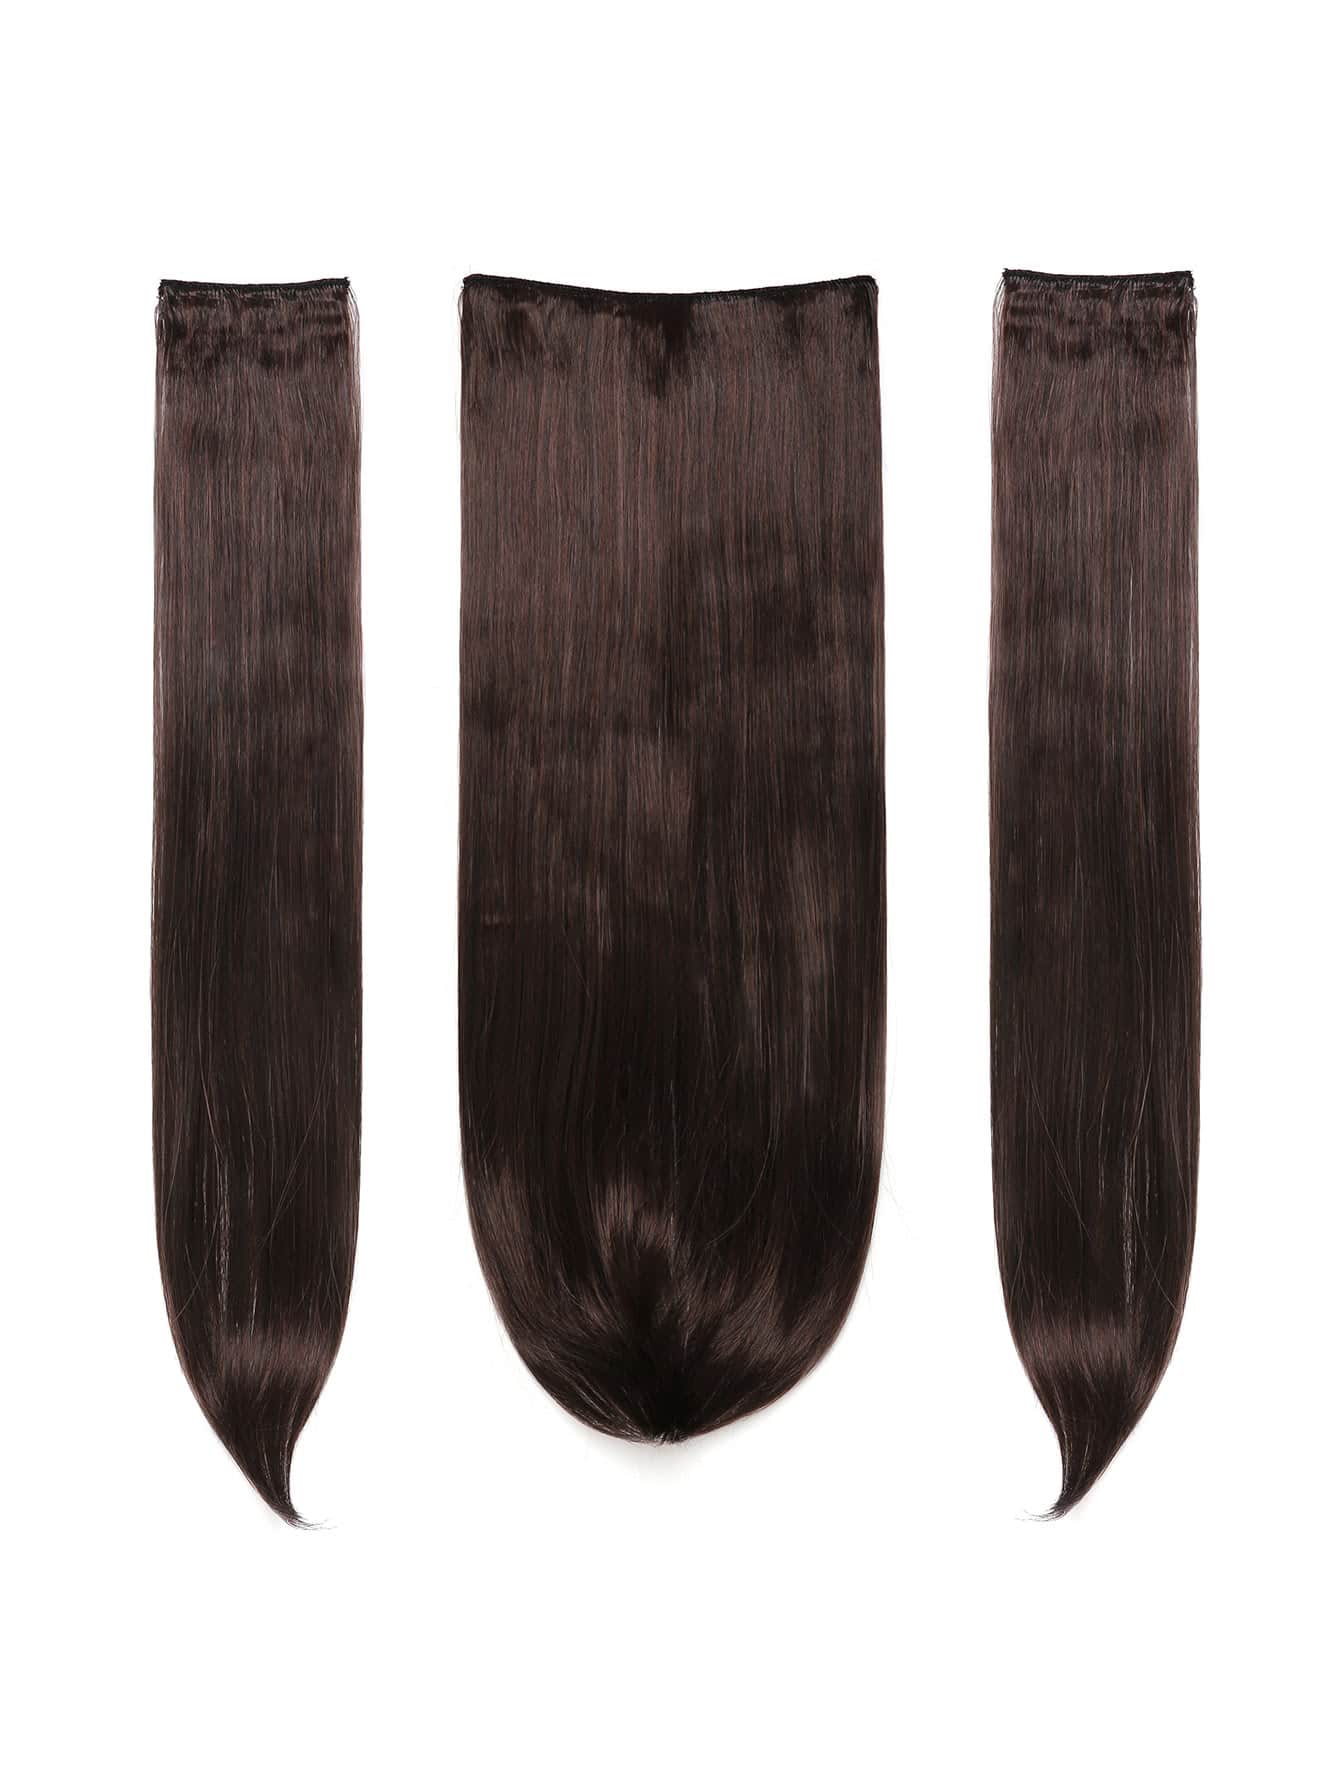 Black Cherry Clip In Straight Hair Extension 3pcs black cherry clip in soft wave hair extension 3pcs